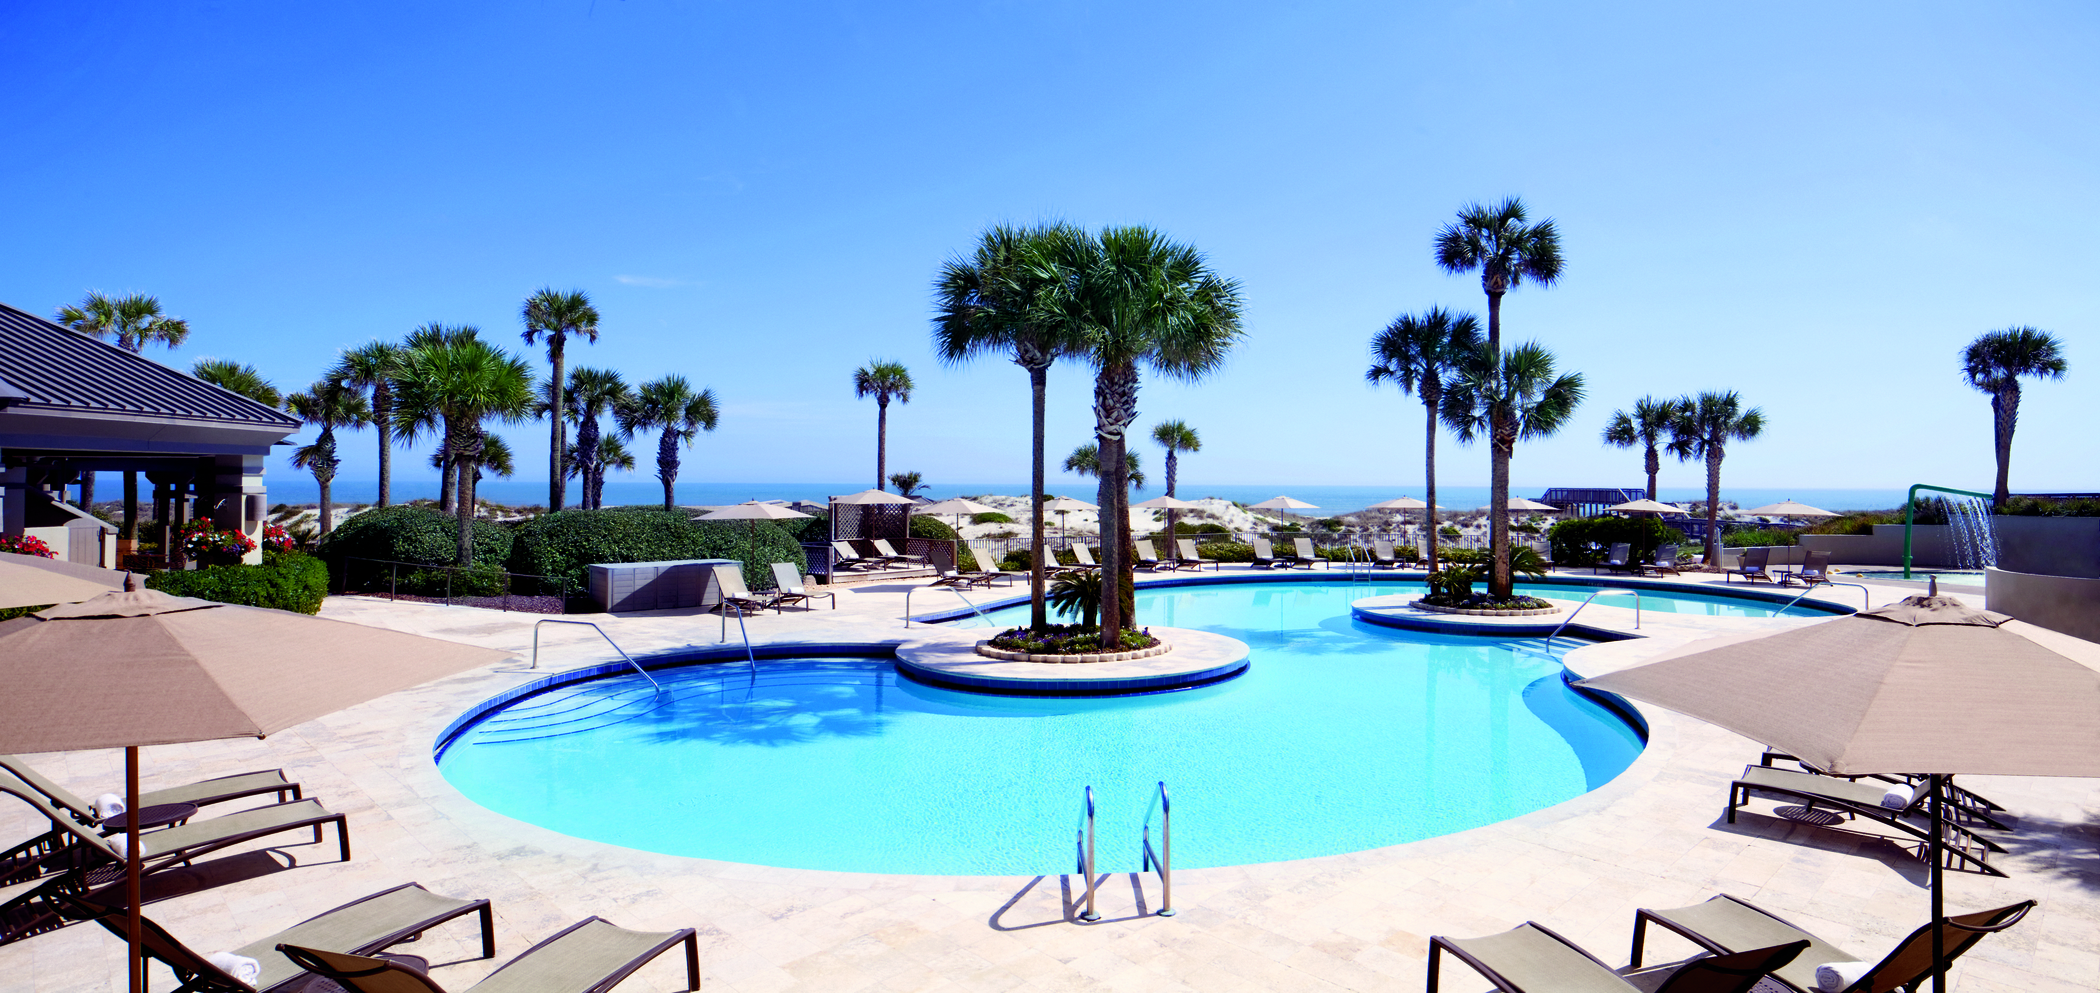 The swimming pool is just steps away from a boardwalk which leads to the Atlantic Ocean and beach activities.